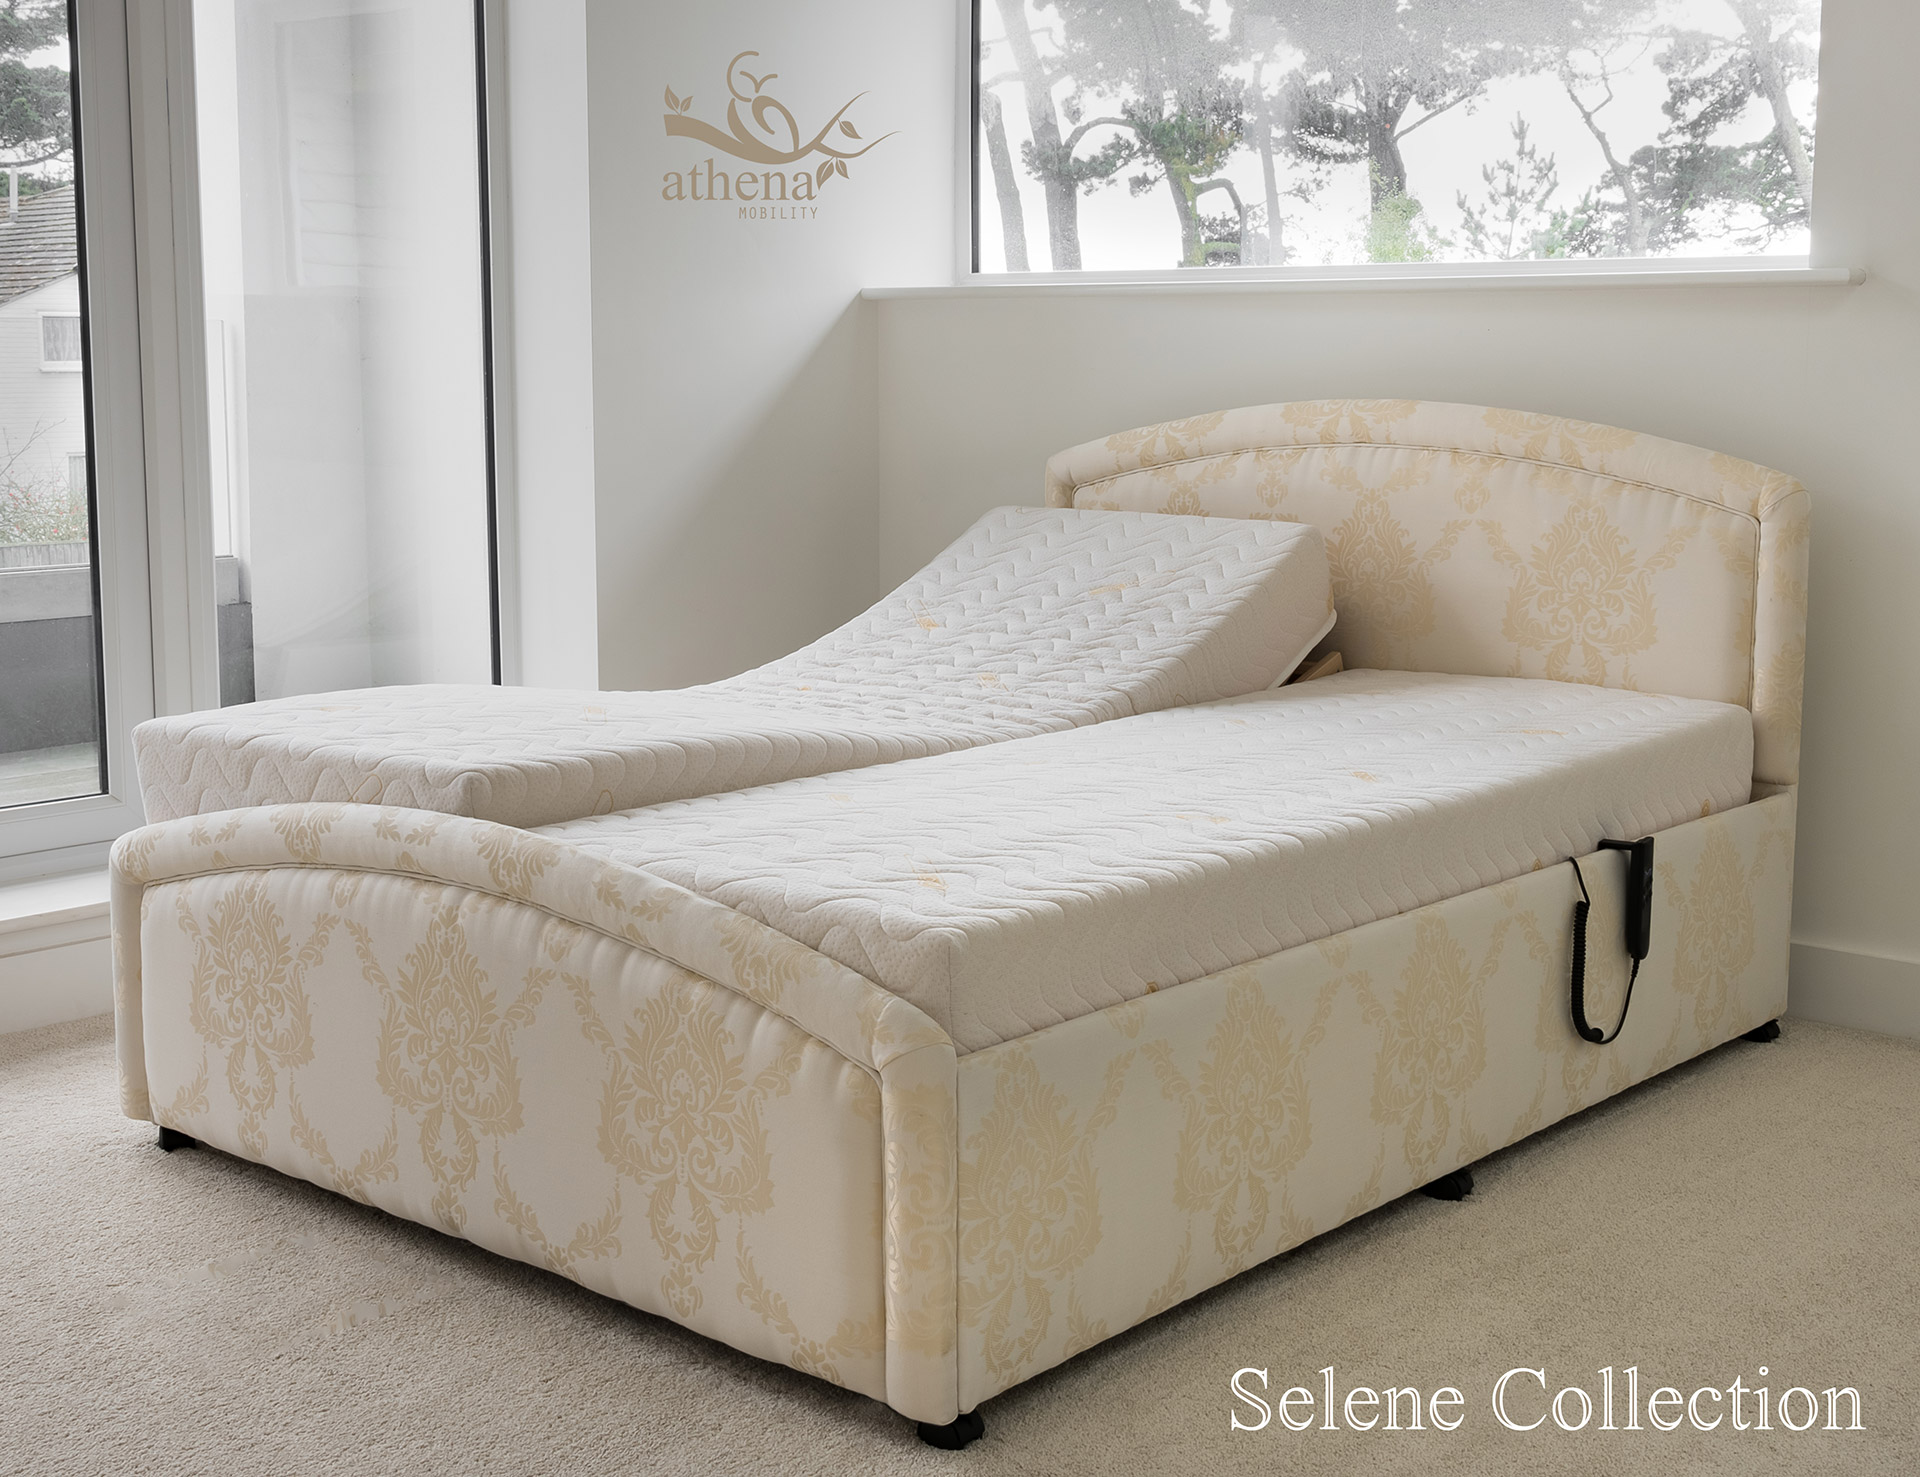 Athena Mobility | Selene Bed Collection